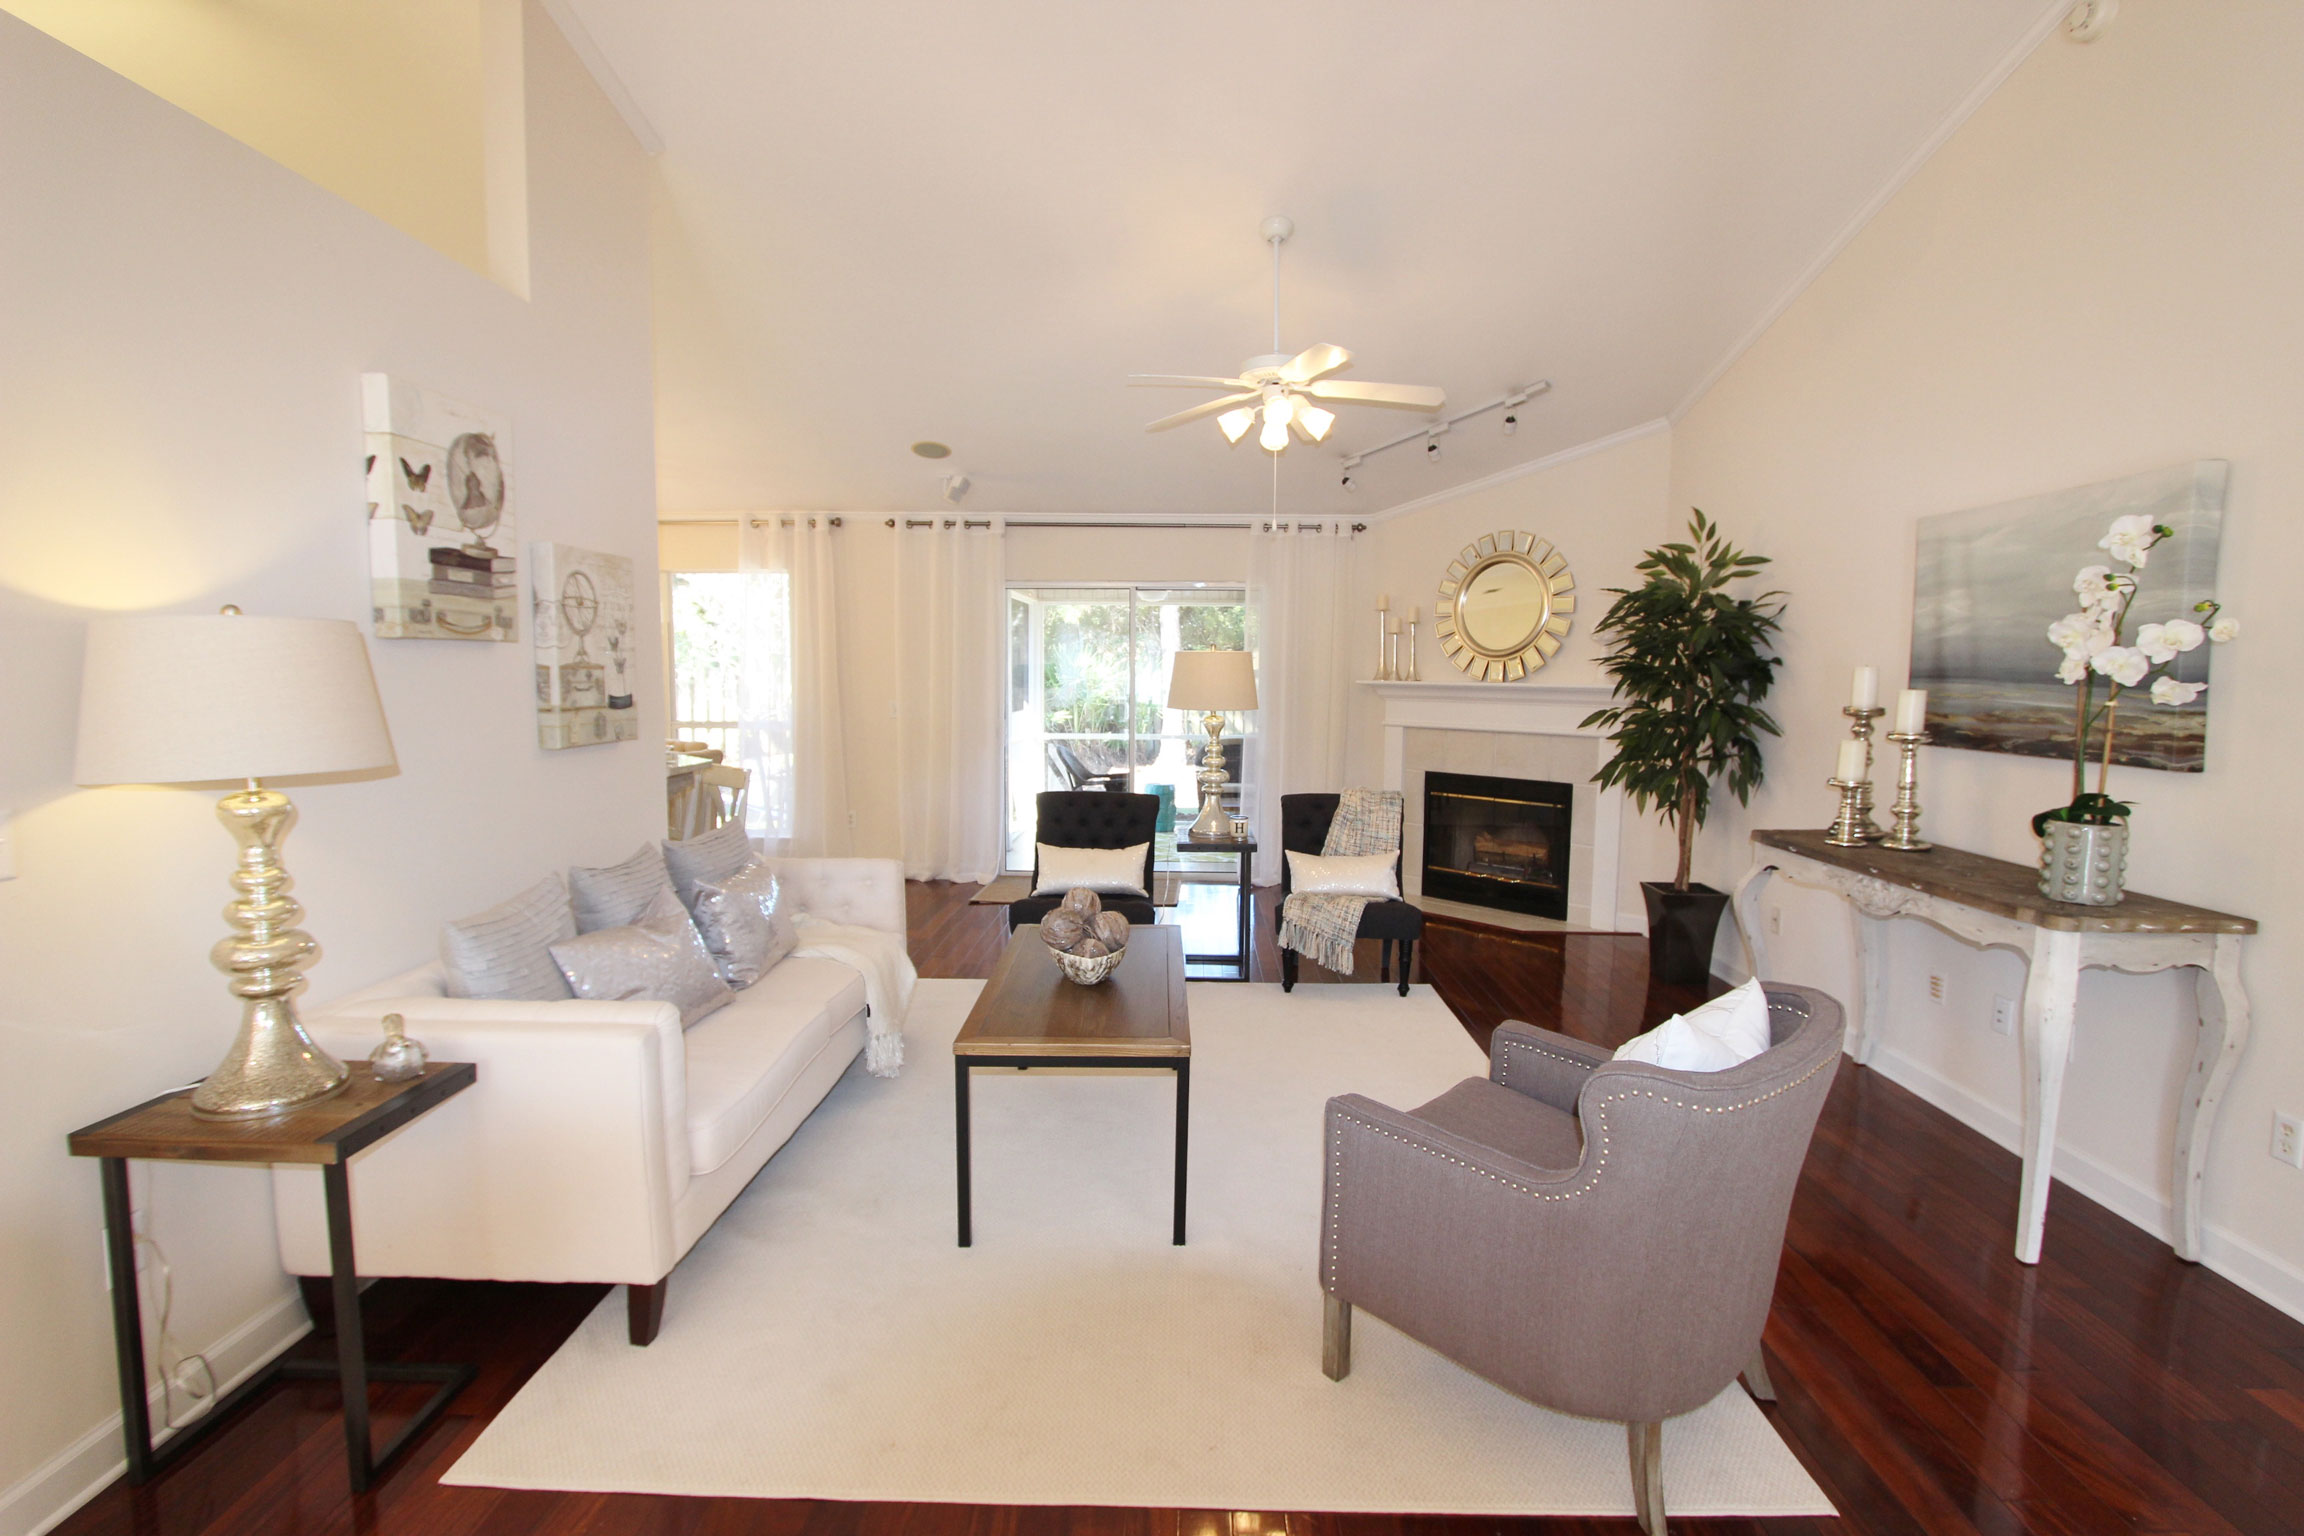 Image of Living Room with Professionally Staged Furniture